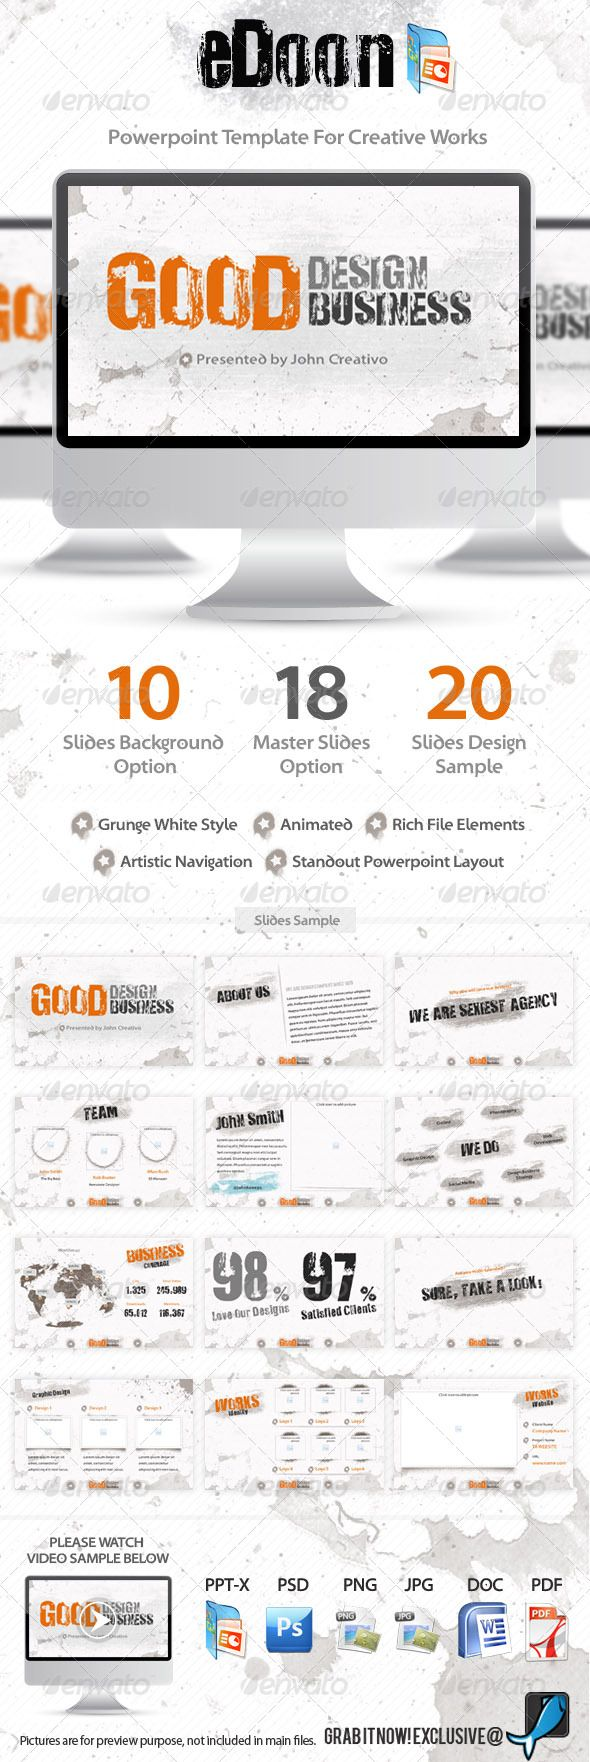 eDoon - Powerpoint Template For Creative Works  - GraphicRiver Item for Sale